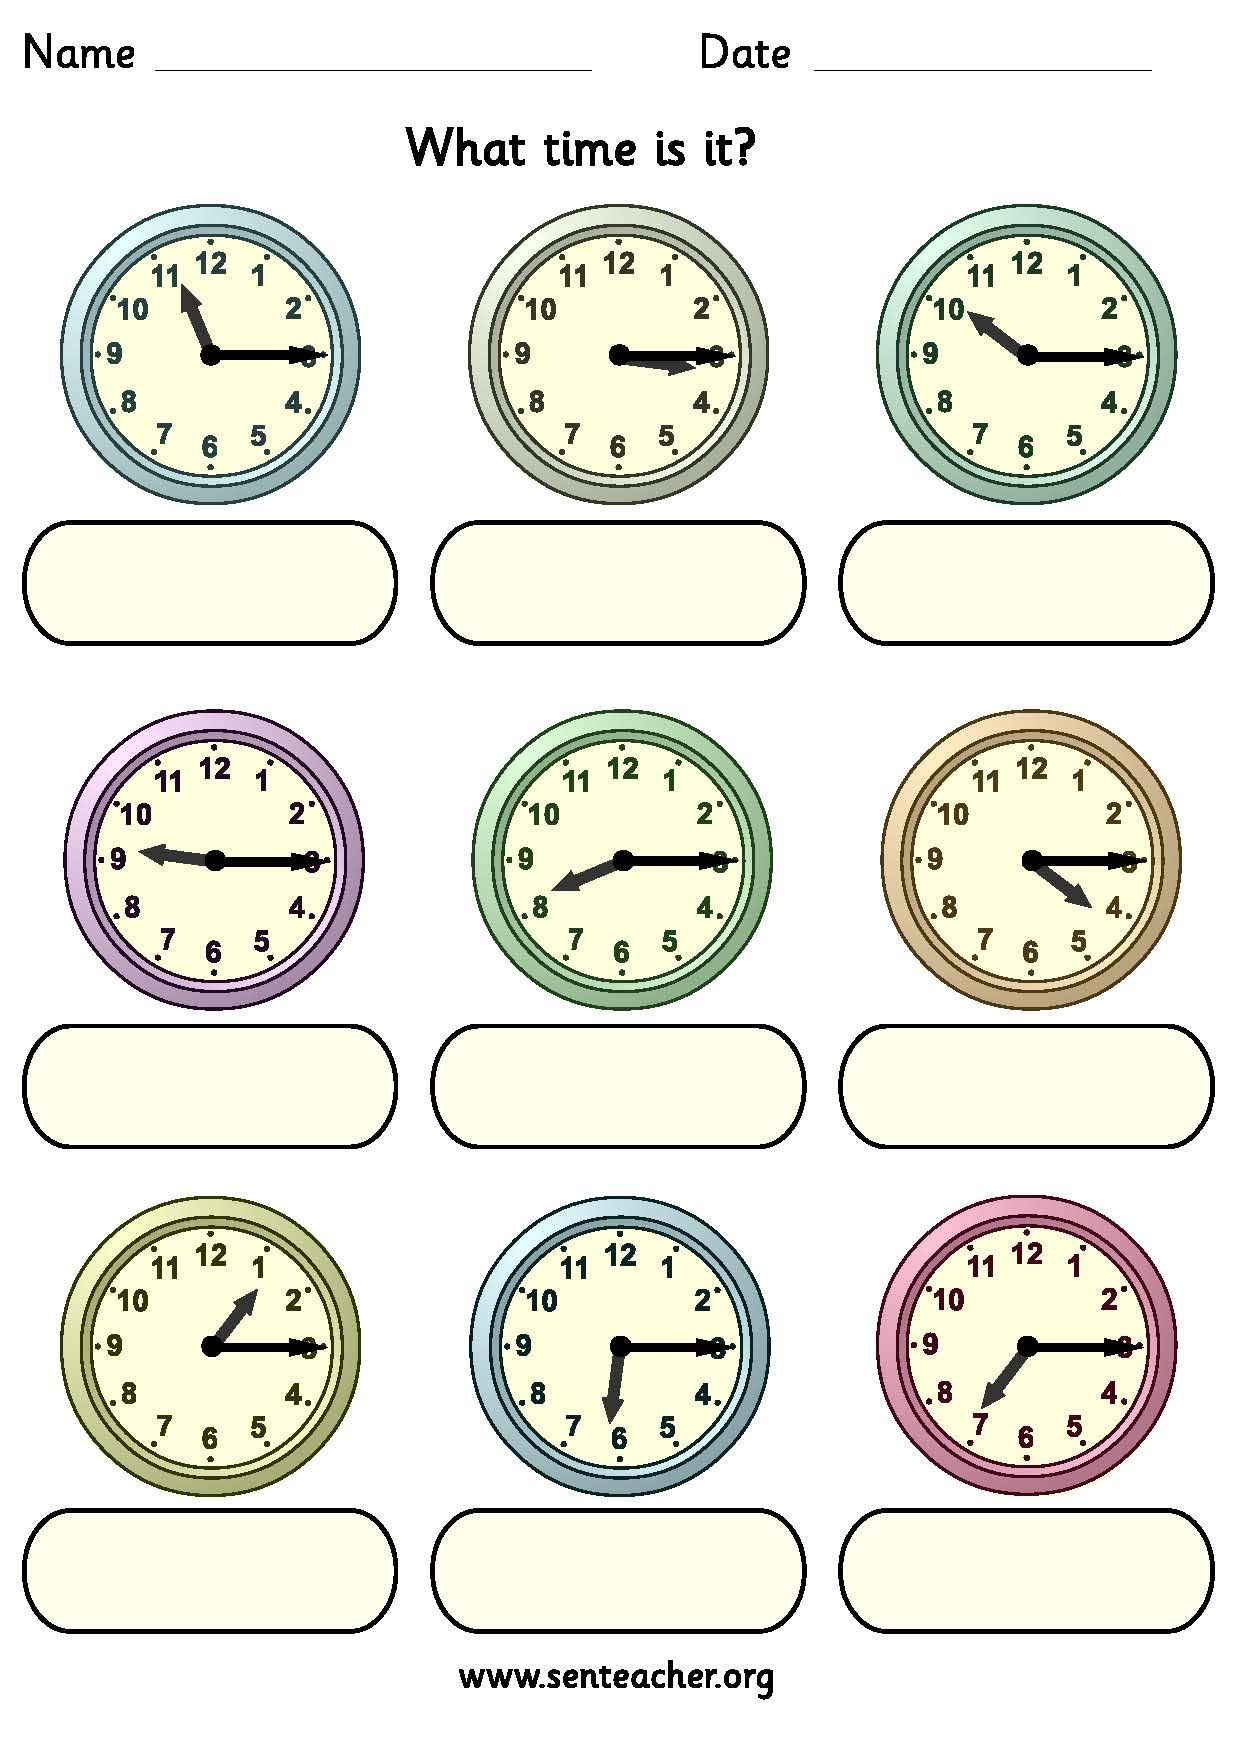 Worksheet Containing 9ogue Clocks Showing Quarter